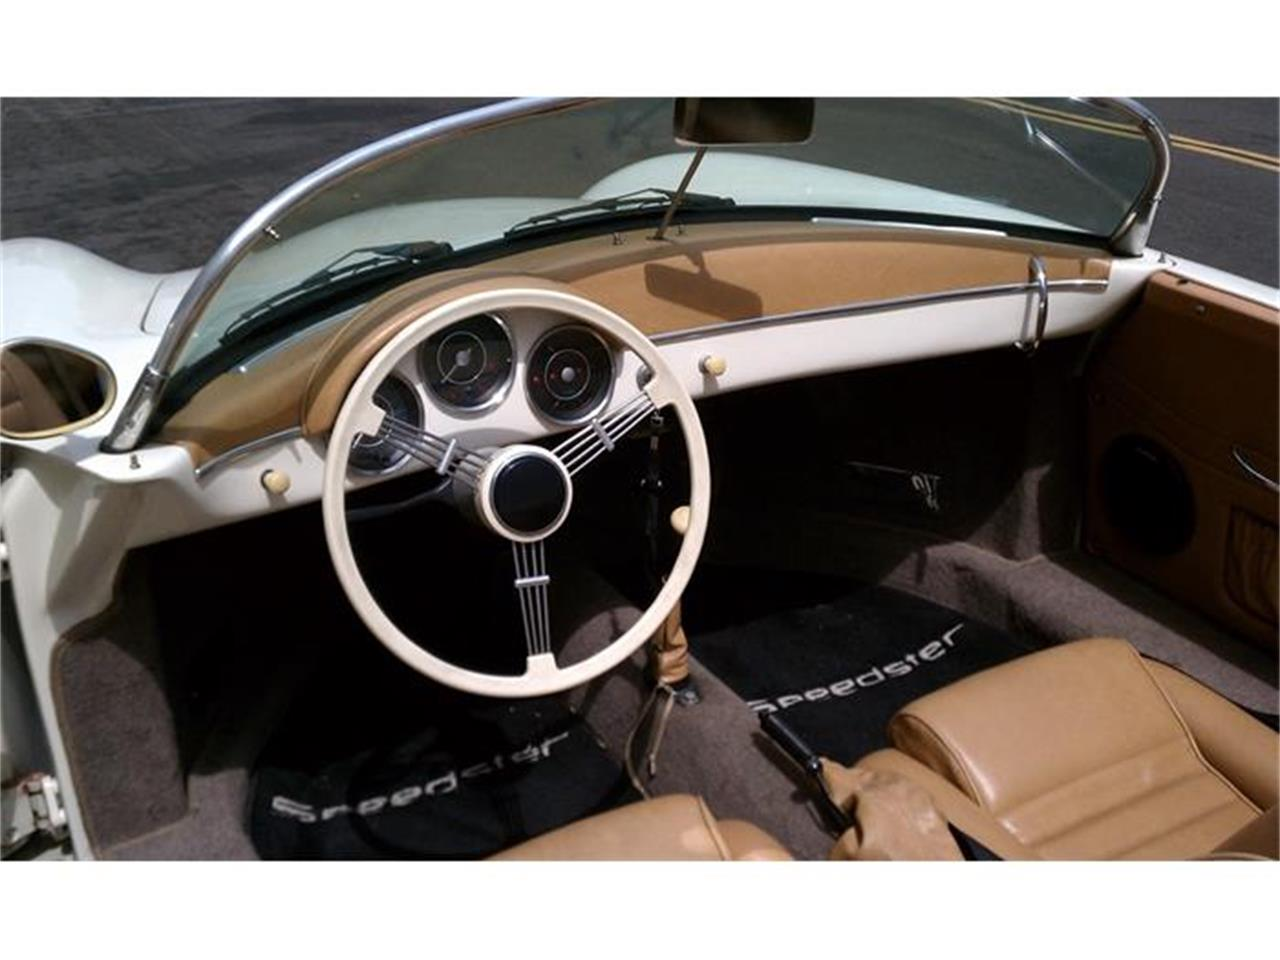 Large Picture of Classic 1957 Speedster located in San Diego California Auction Vehicle - C39J